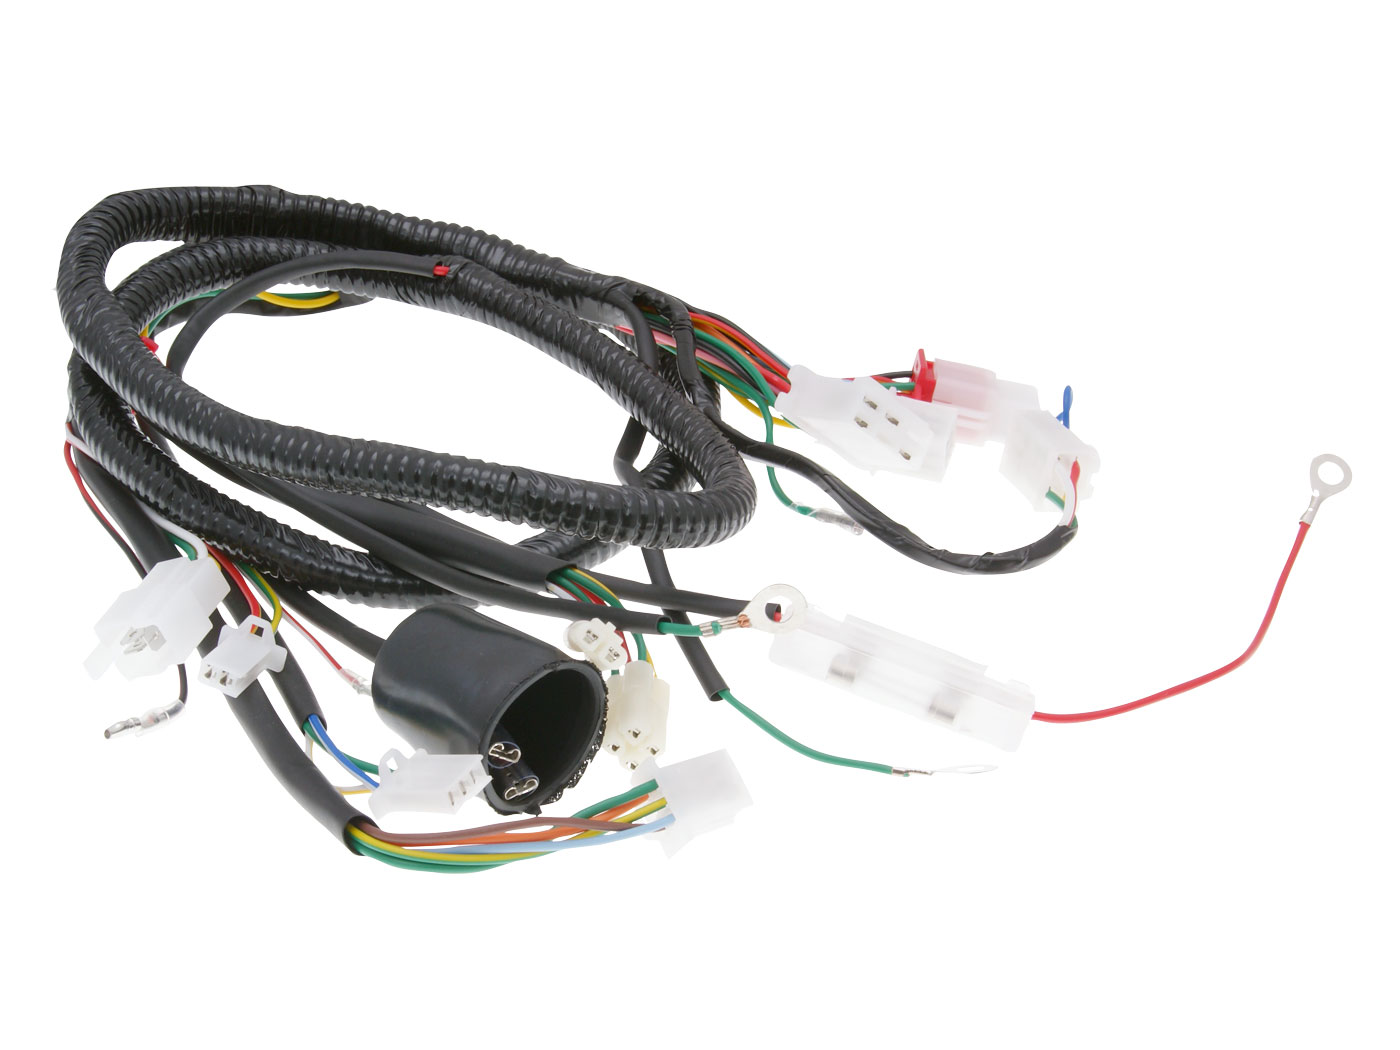 Wiring Harness For Peugeot V Clic En Different Chinese Scooter 4 Kymco And Spark Plug Stroke 50cc Price 1899 Motorkit Bt17296 Directly Availabl